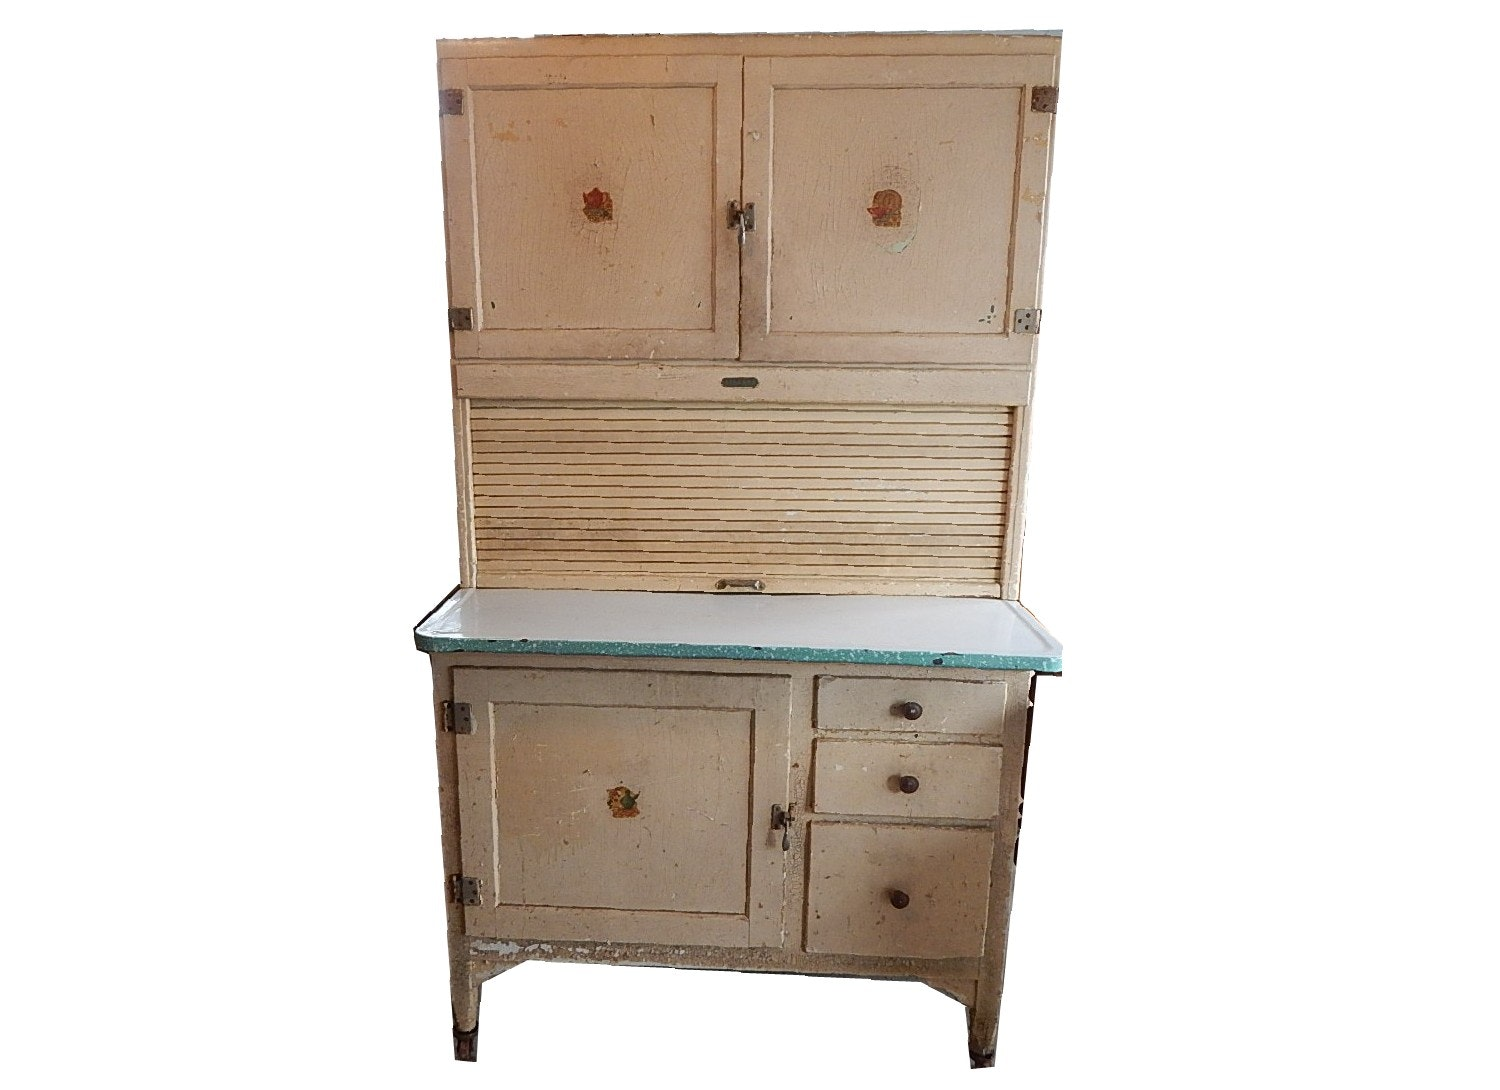 Sellers Kitchen Cabinet: Antique Shabby Chic Painted Sellers Roll-Top Kitchen